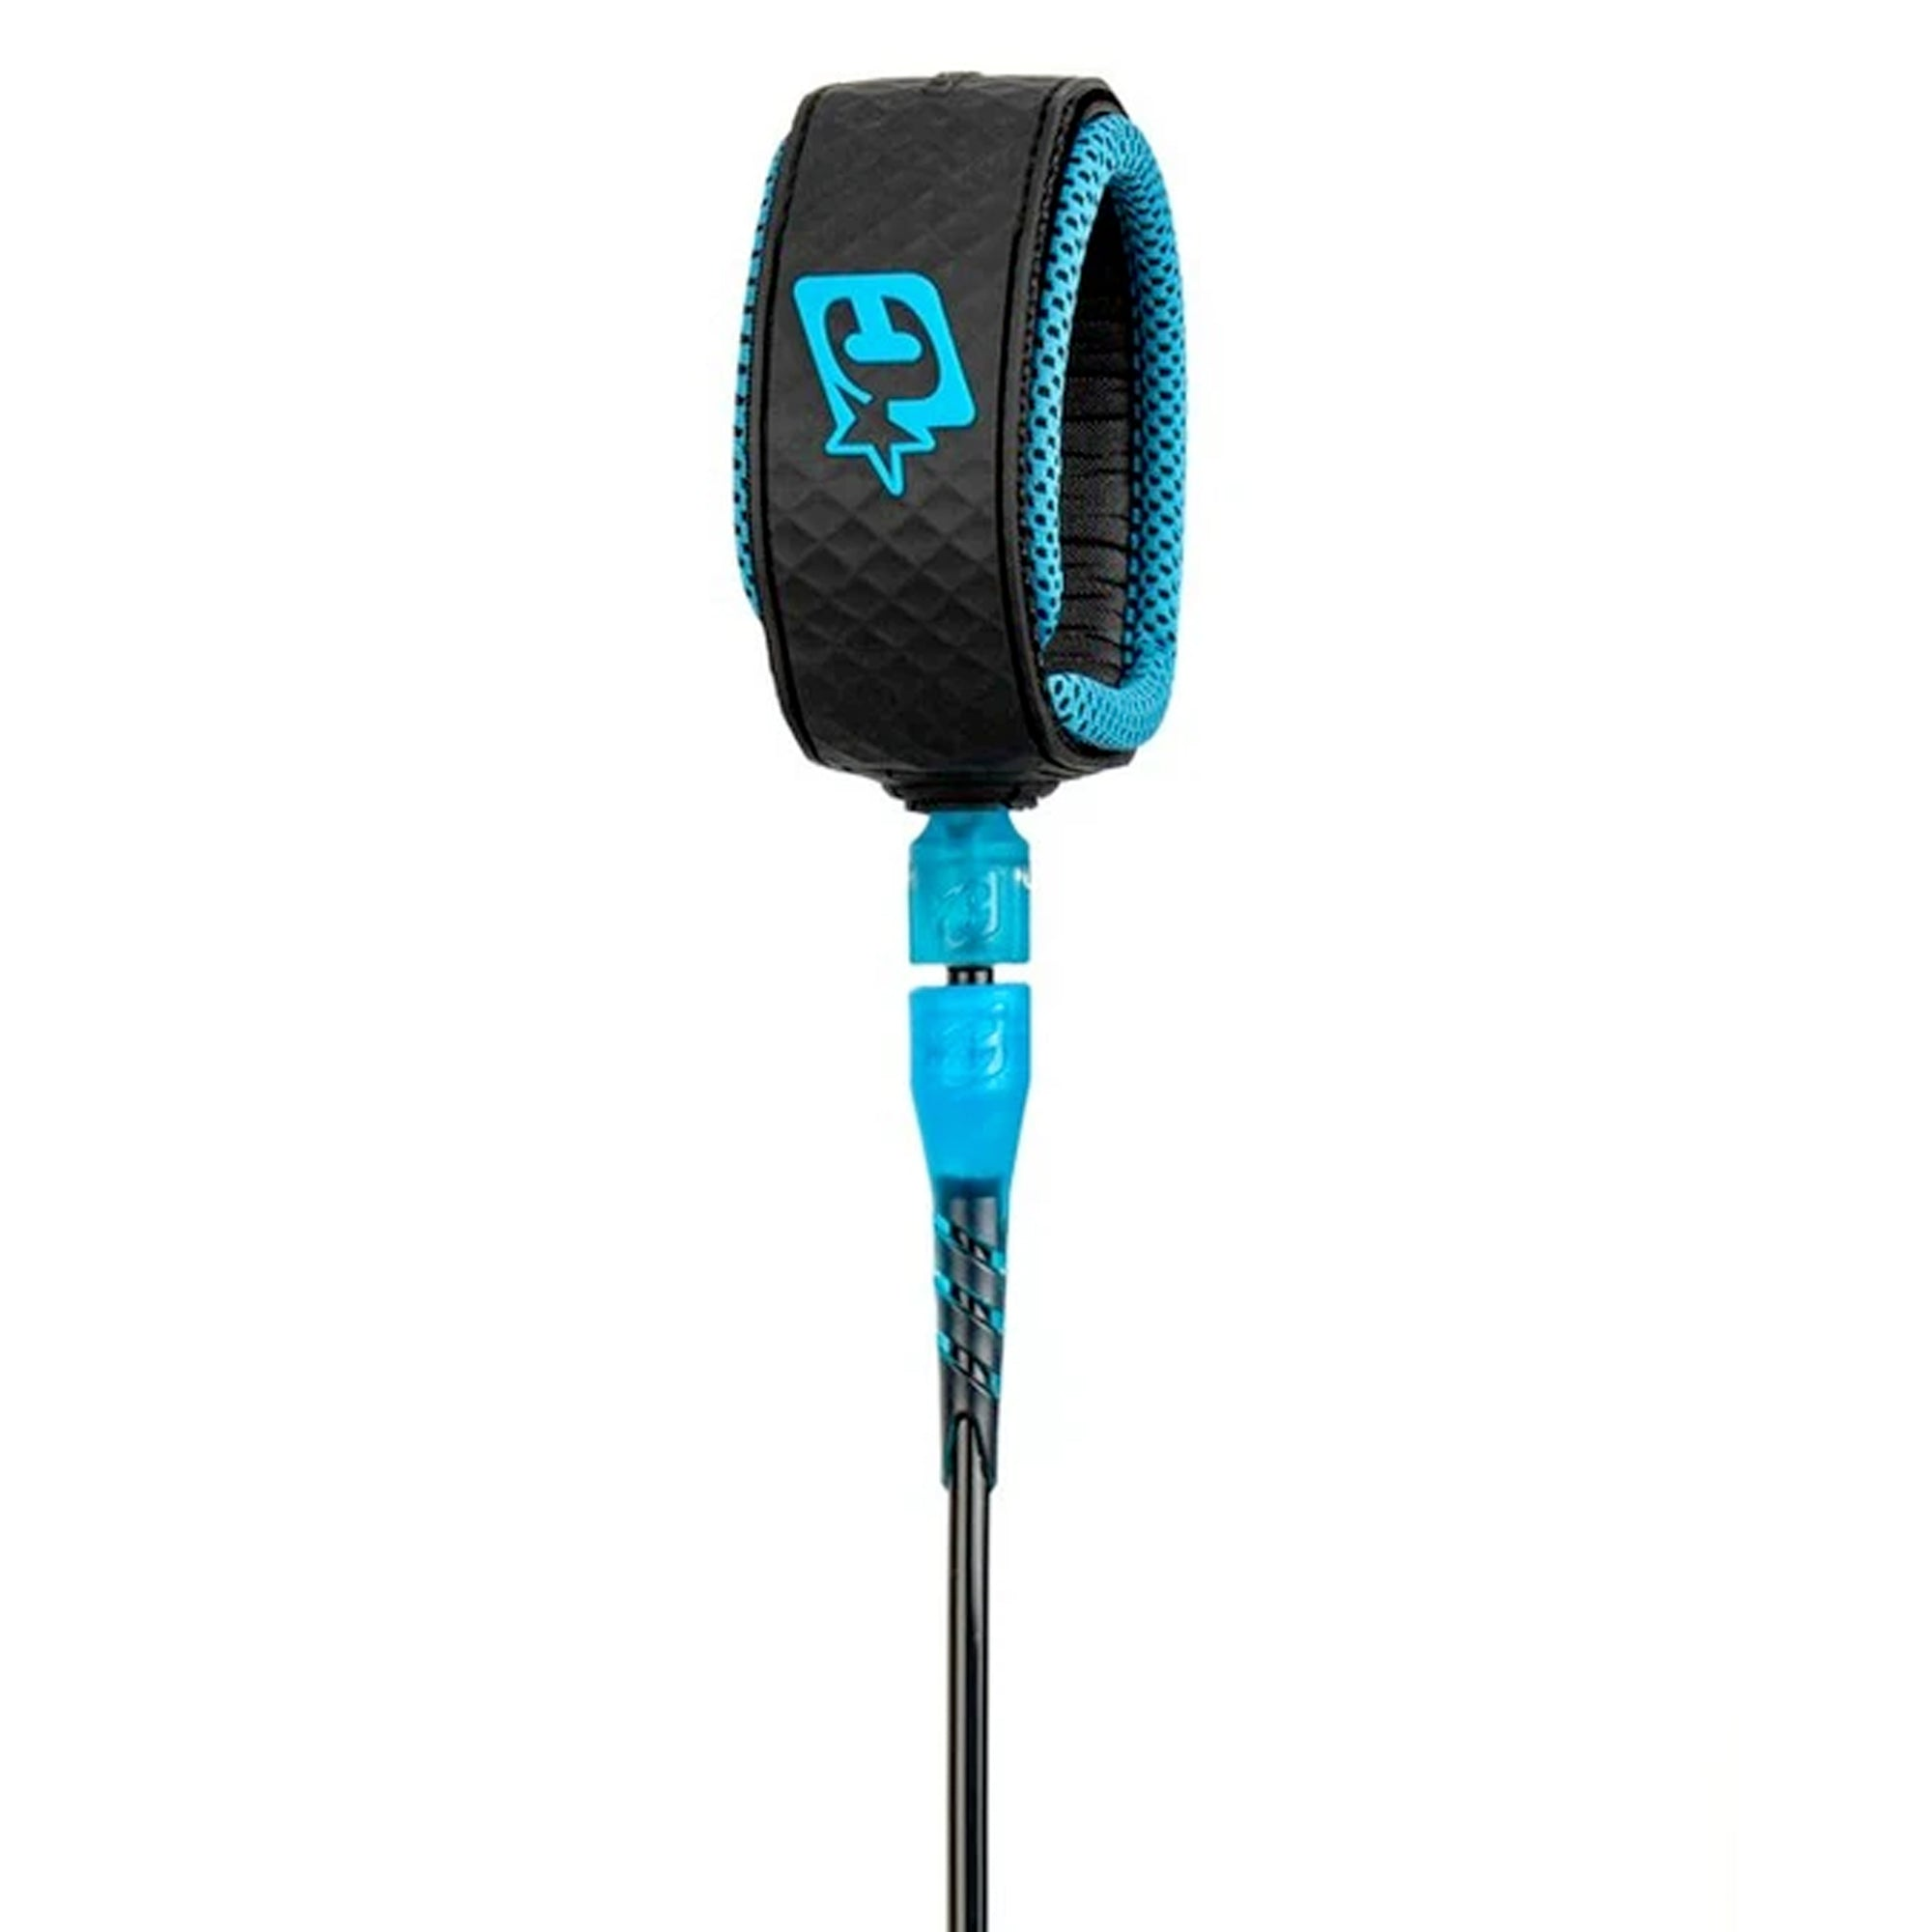 Creatures of Leisure Reliance Lite 6' Surfboard Leash - Cyan/Black